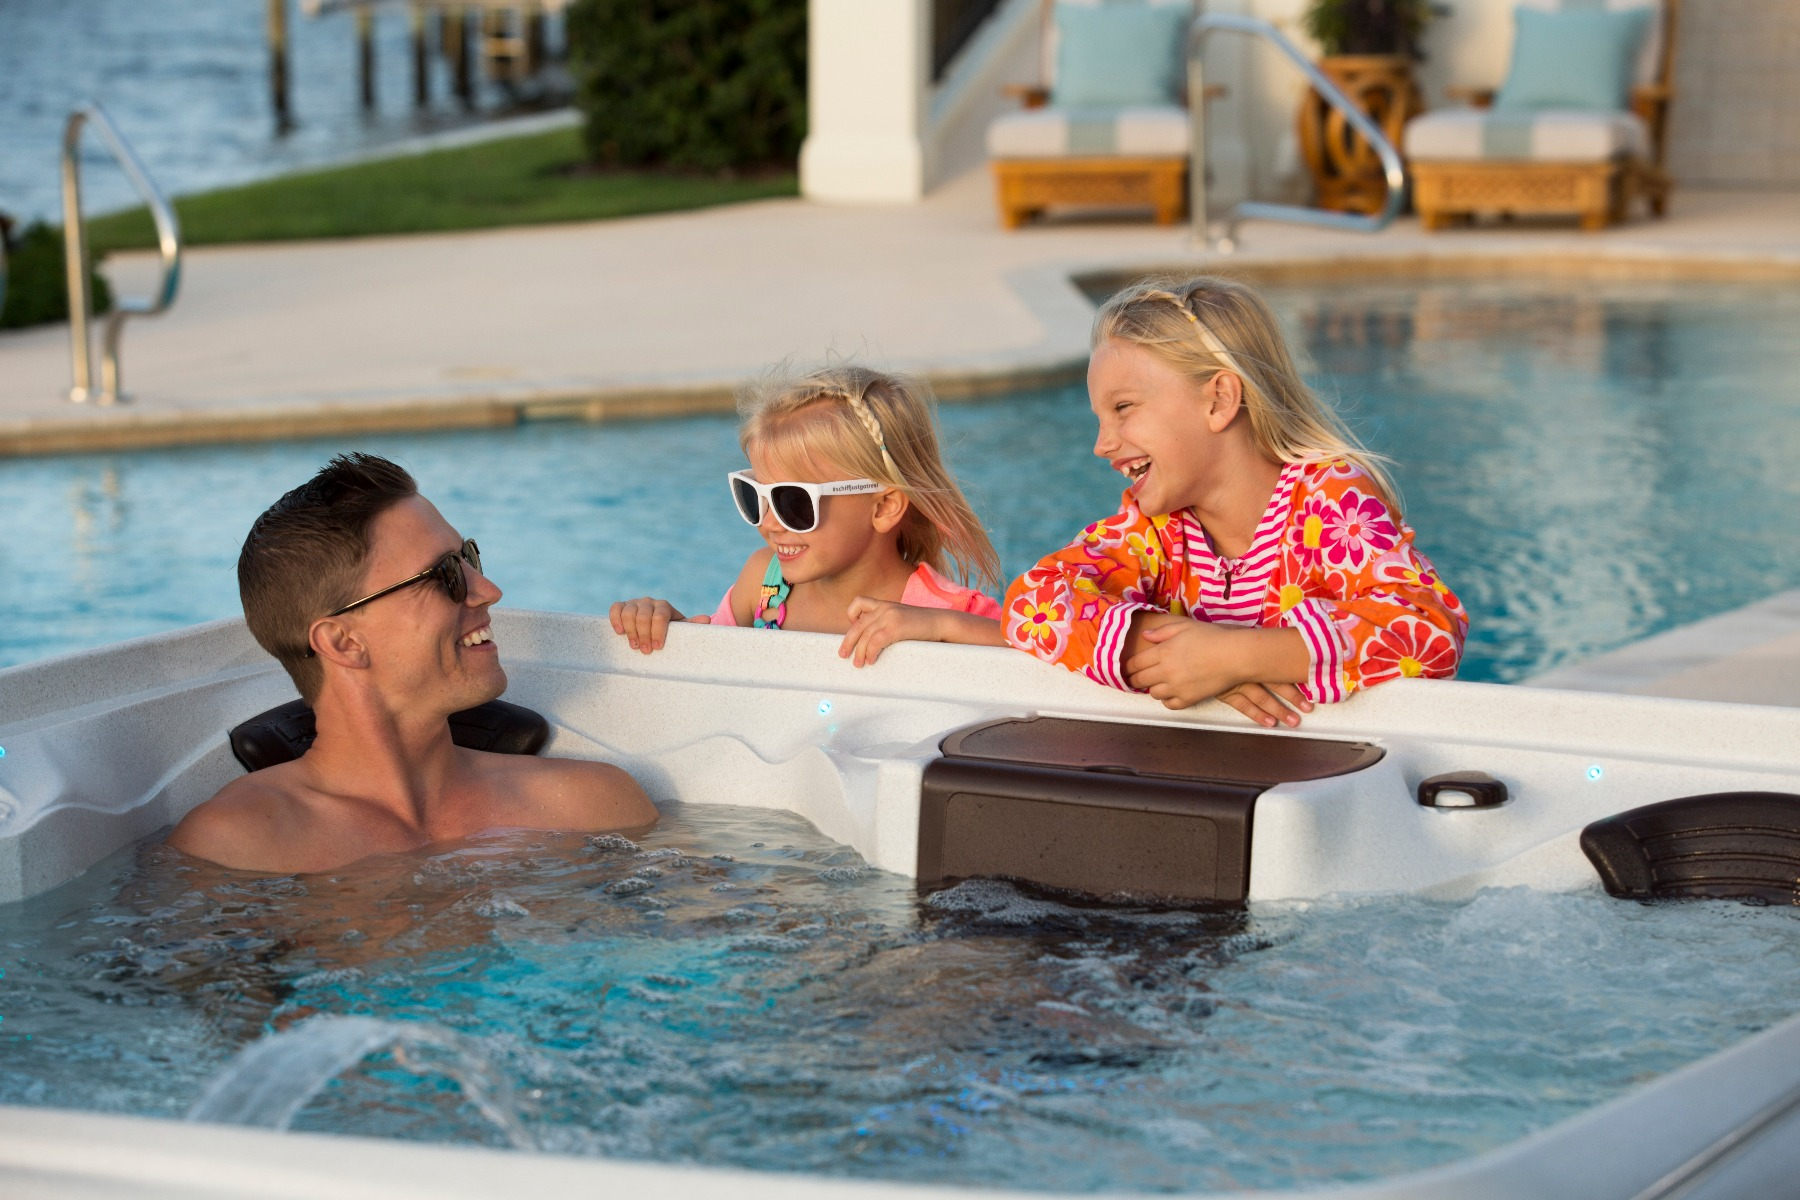 The Award Suite Spa is great for family time.